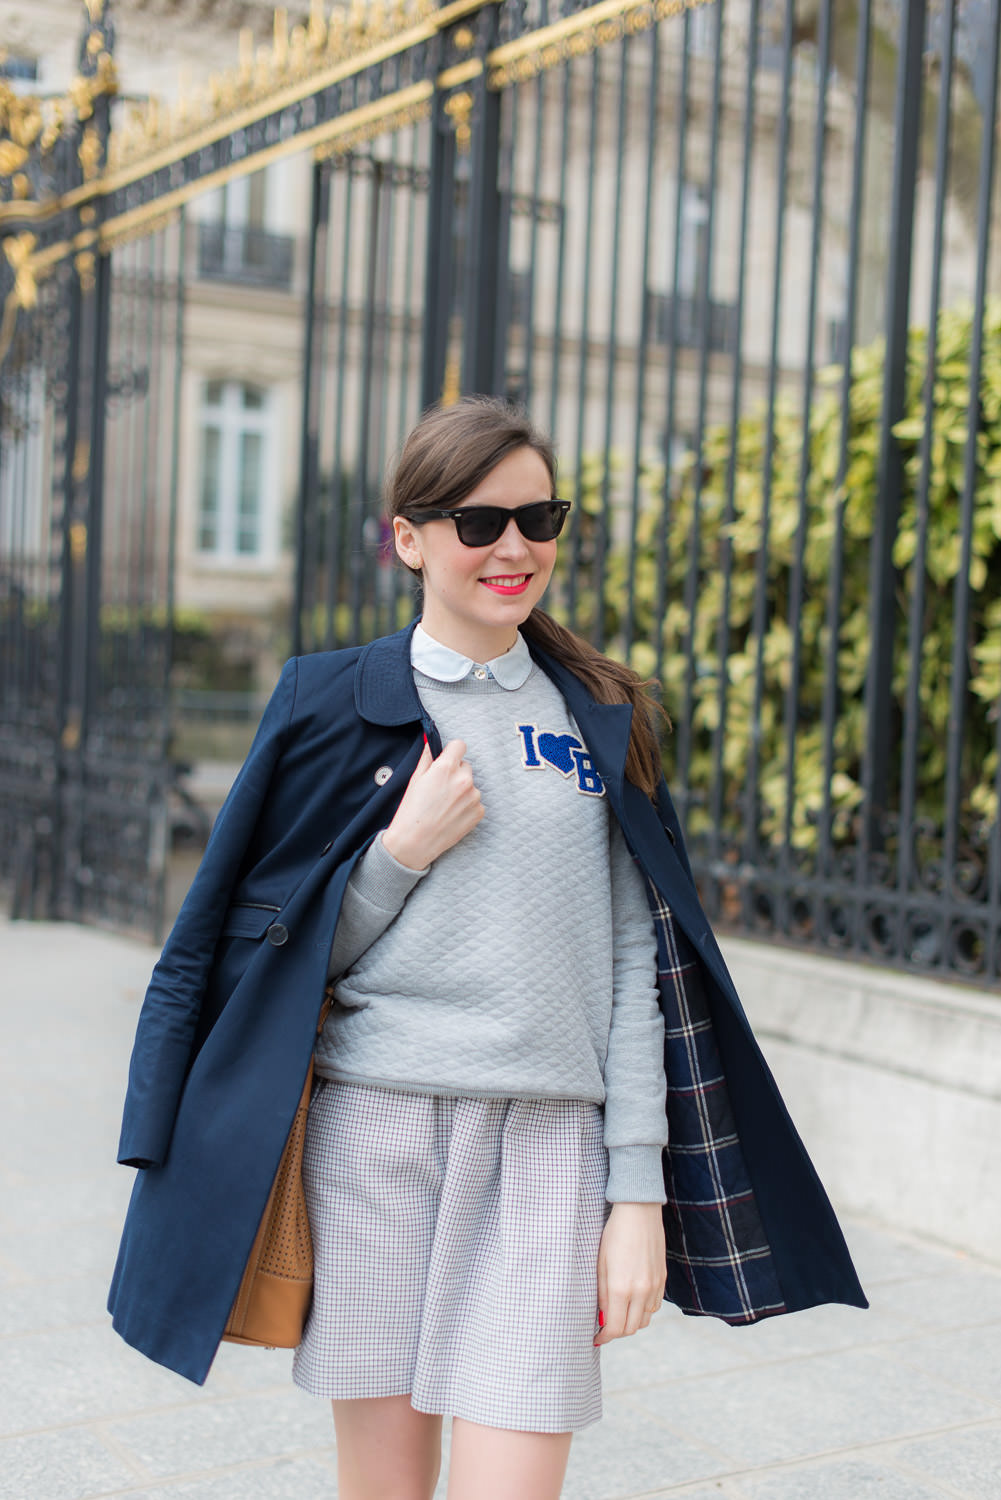 Blog-mode-Mode-And-The-City-looks-collaboration-clarks-orla-kiely (6 sur 11)